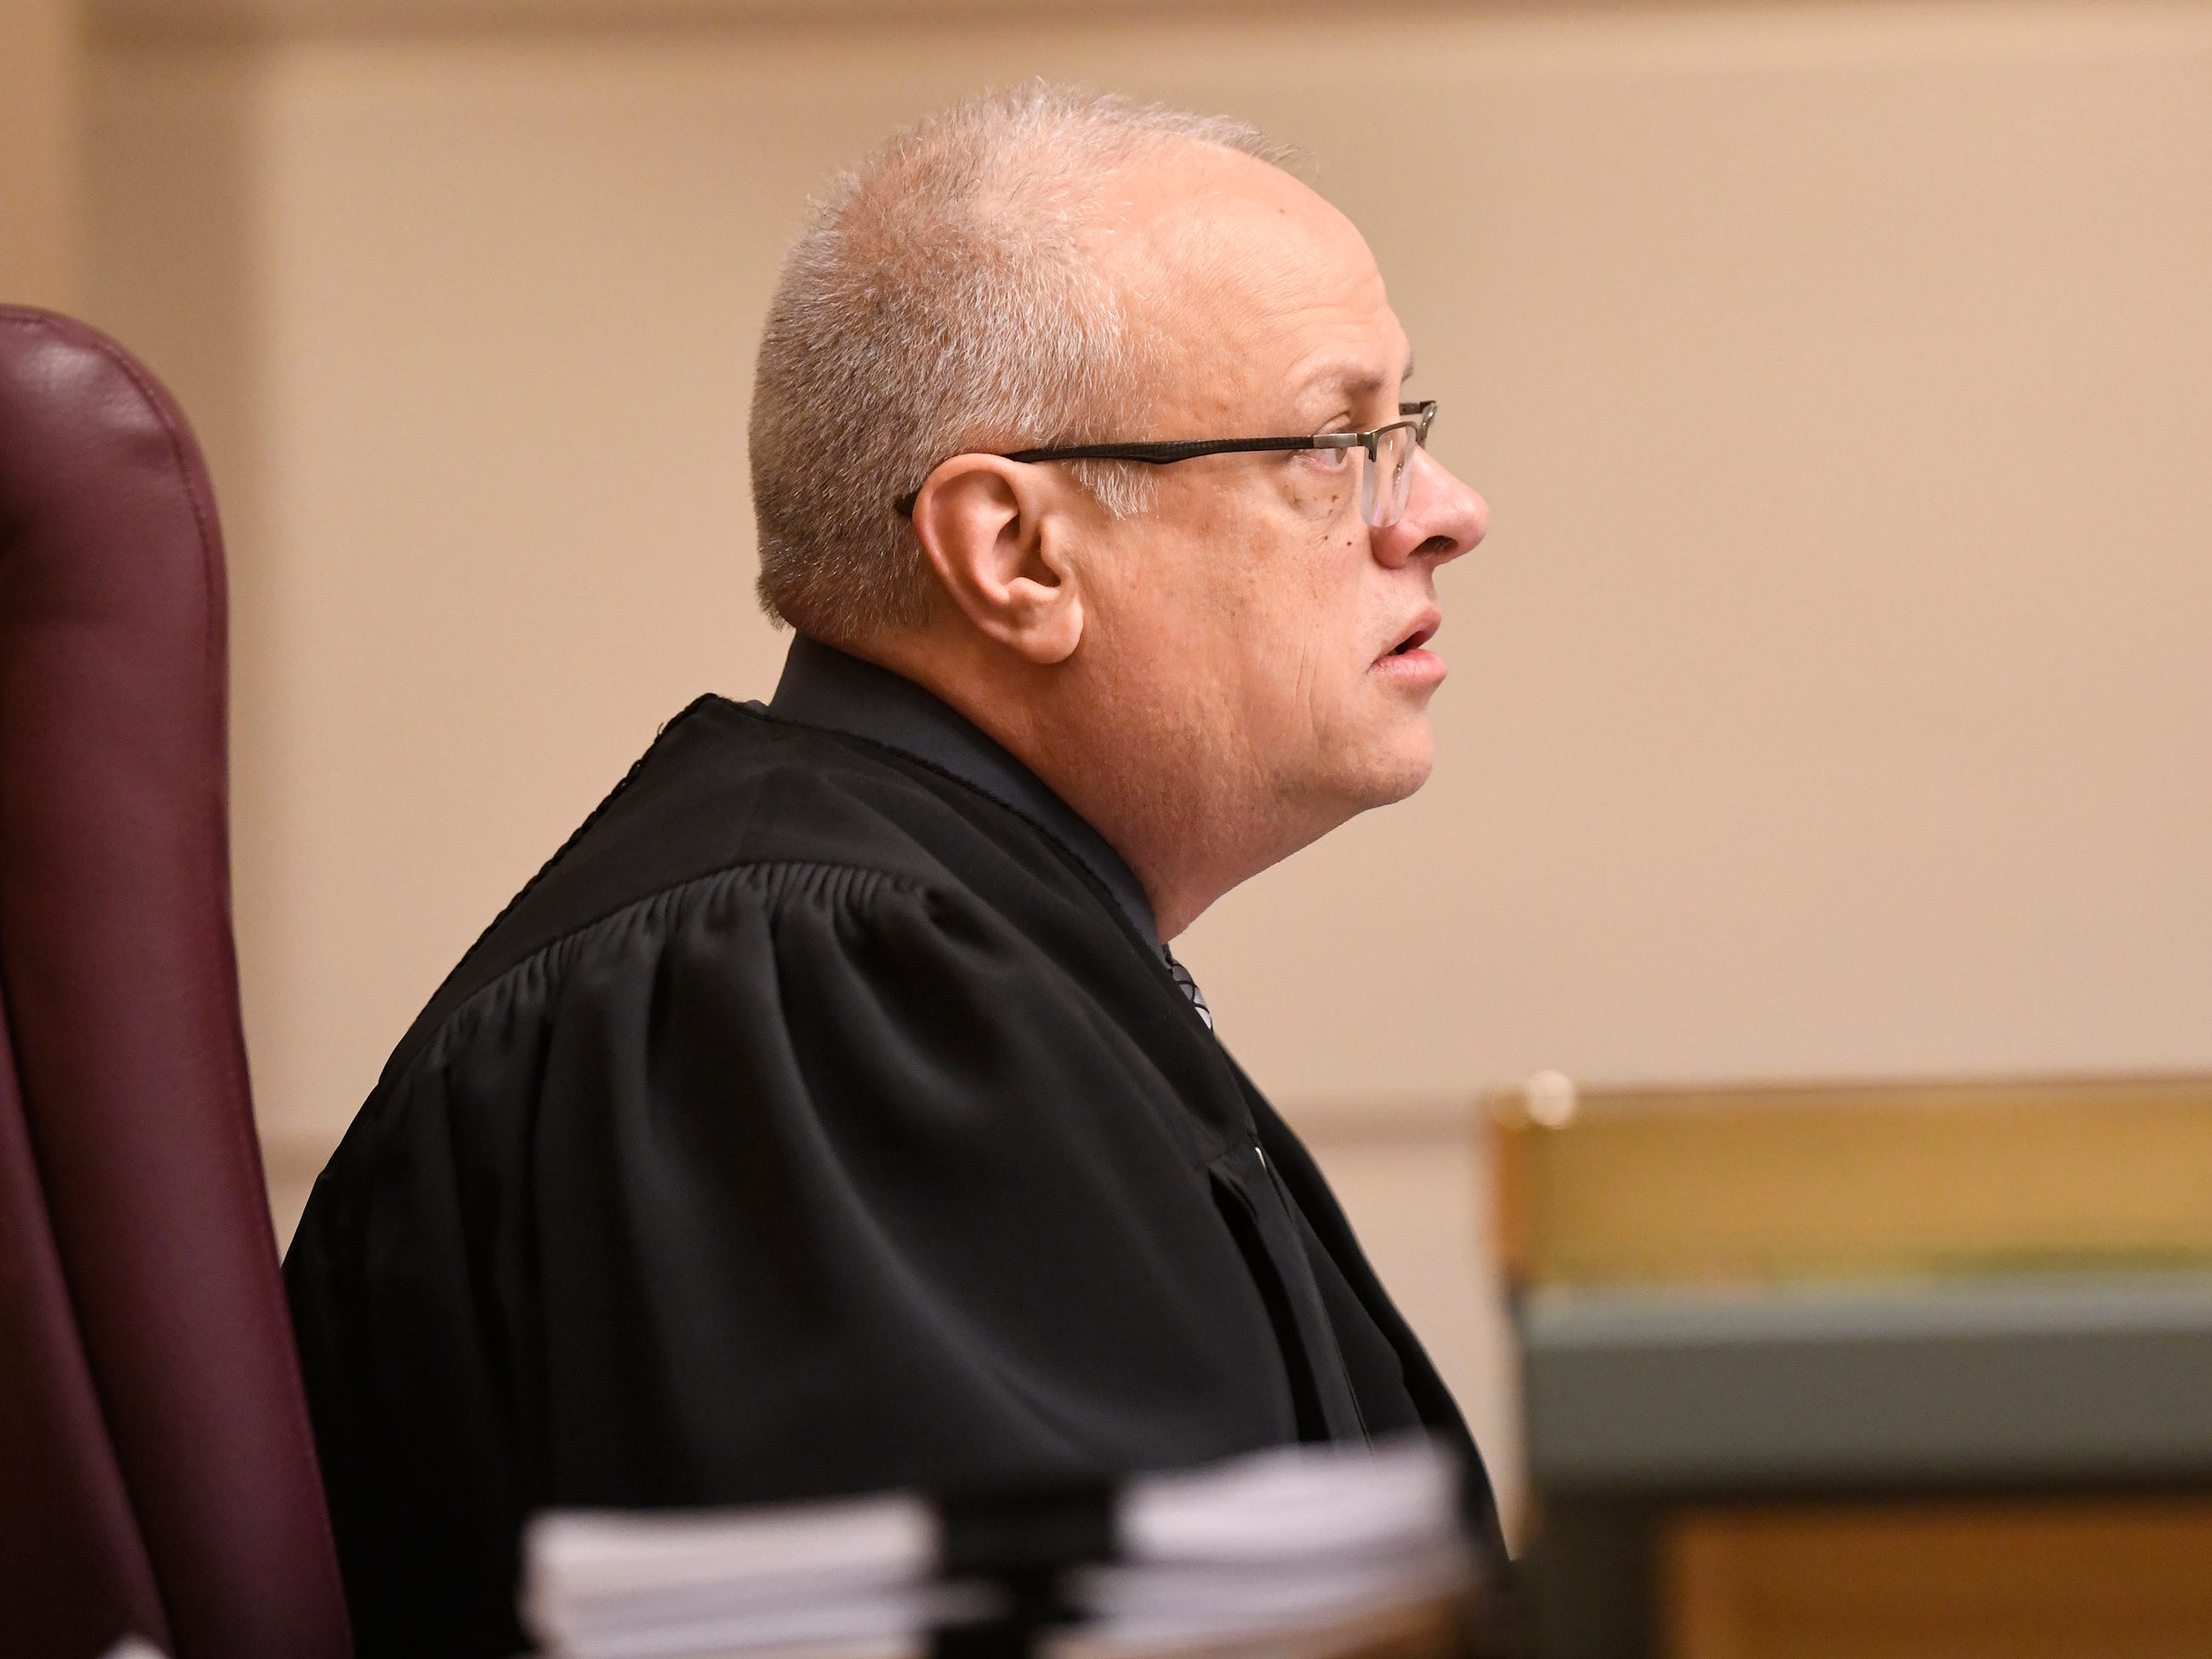 Judge Cristen D'Arrigo listens to statements from Tara O'Shea-Watson's family during the sentencing of Jeremiah E. Monell in Cumberland County Superior Court on Friday, Mar. 15, 2019.